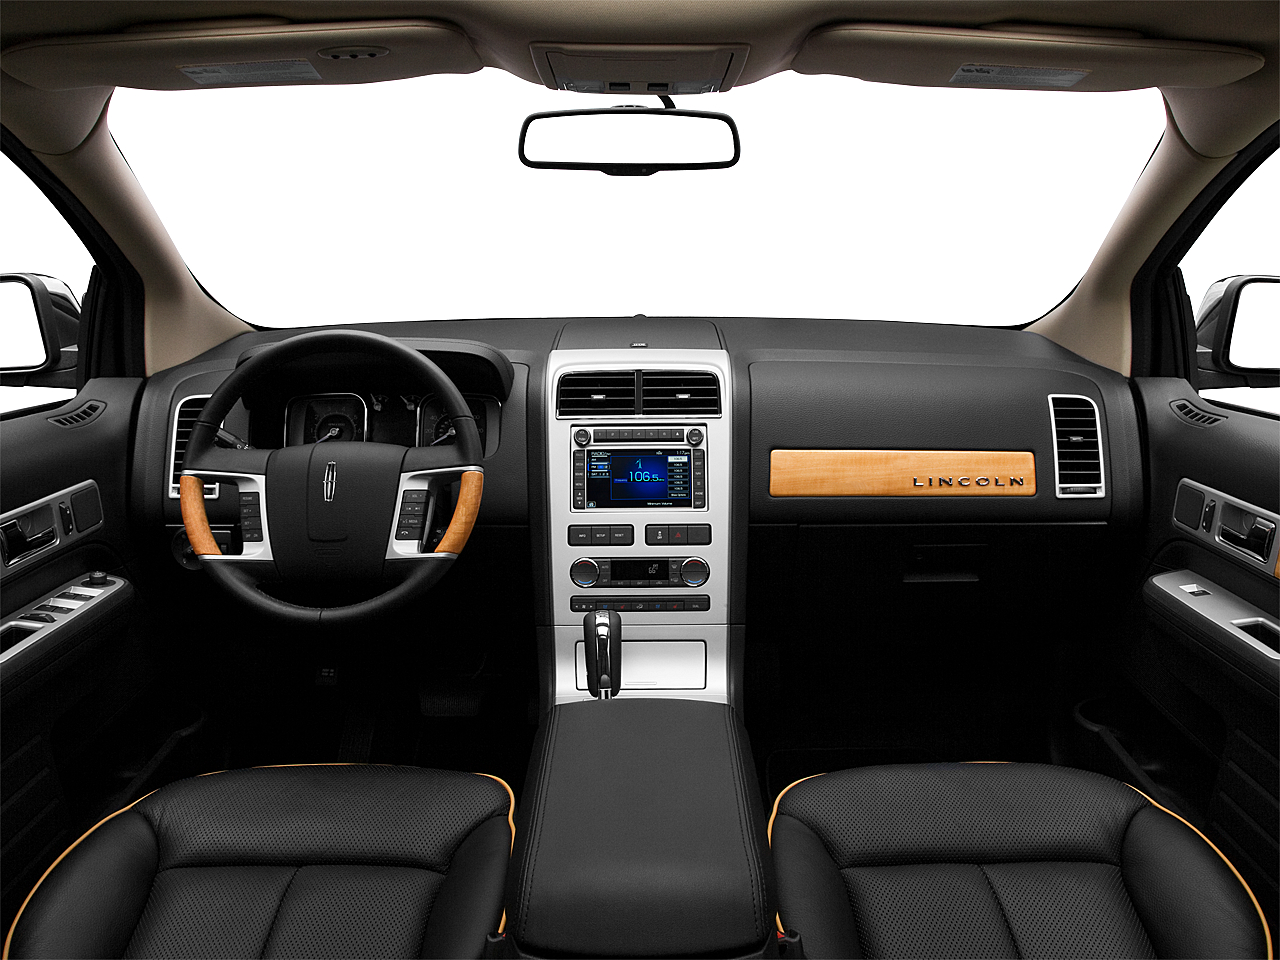 results lincoln for sales auction image interior mkx data mxz and valuation